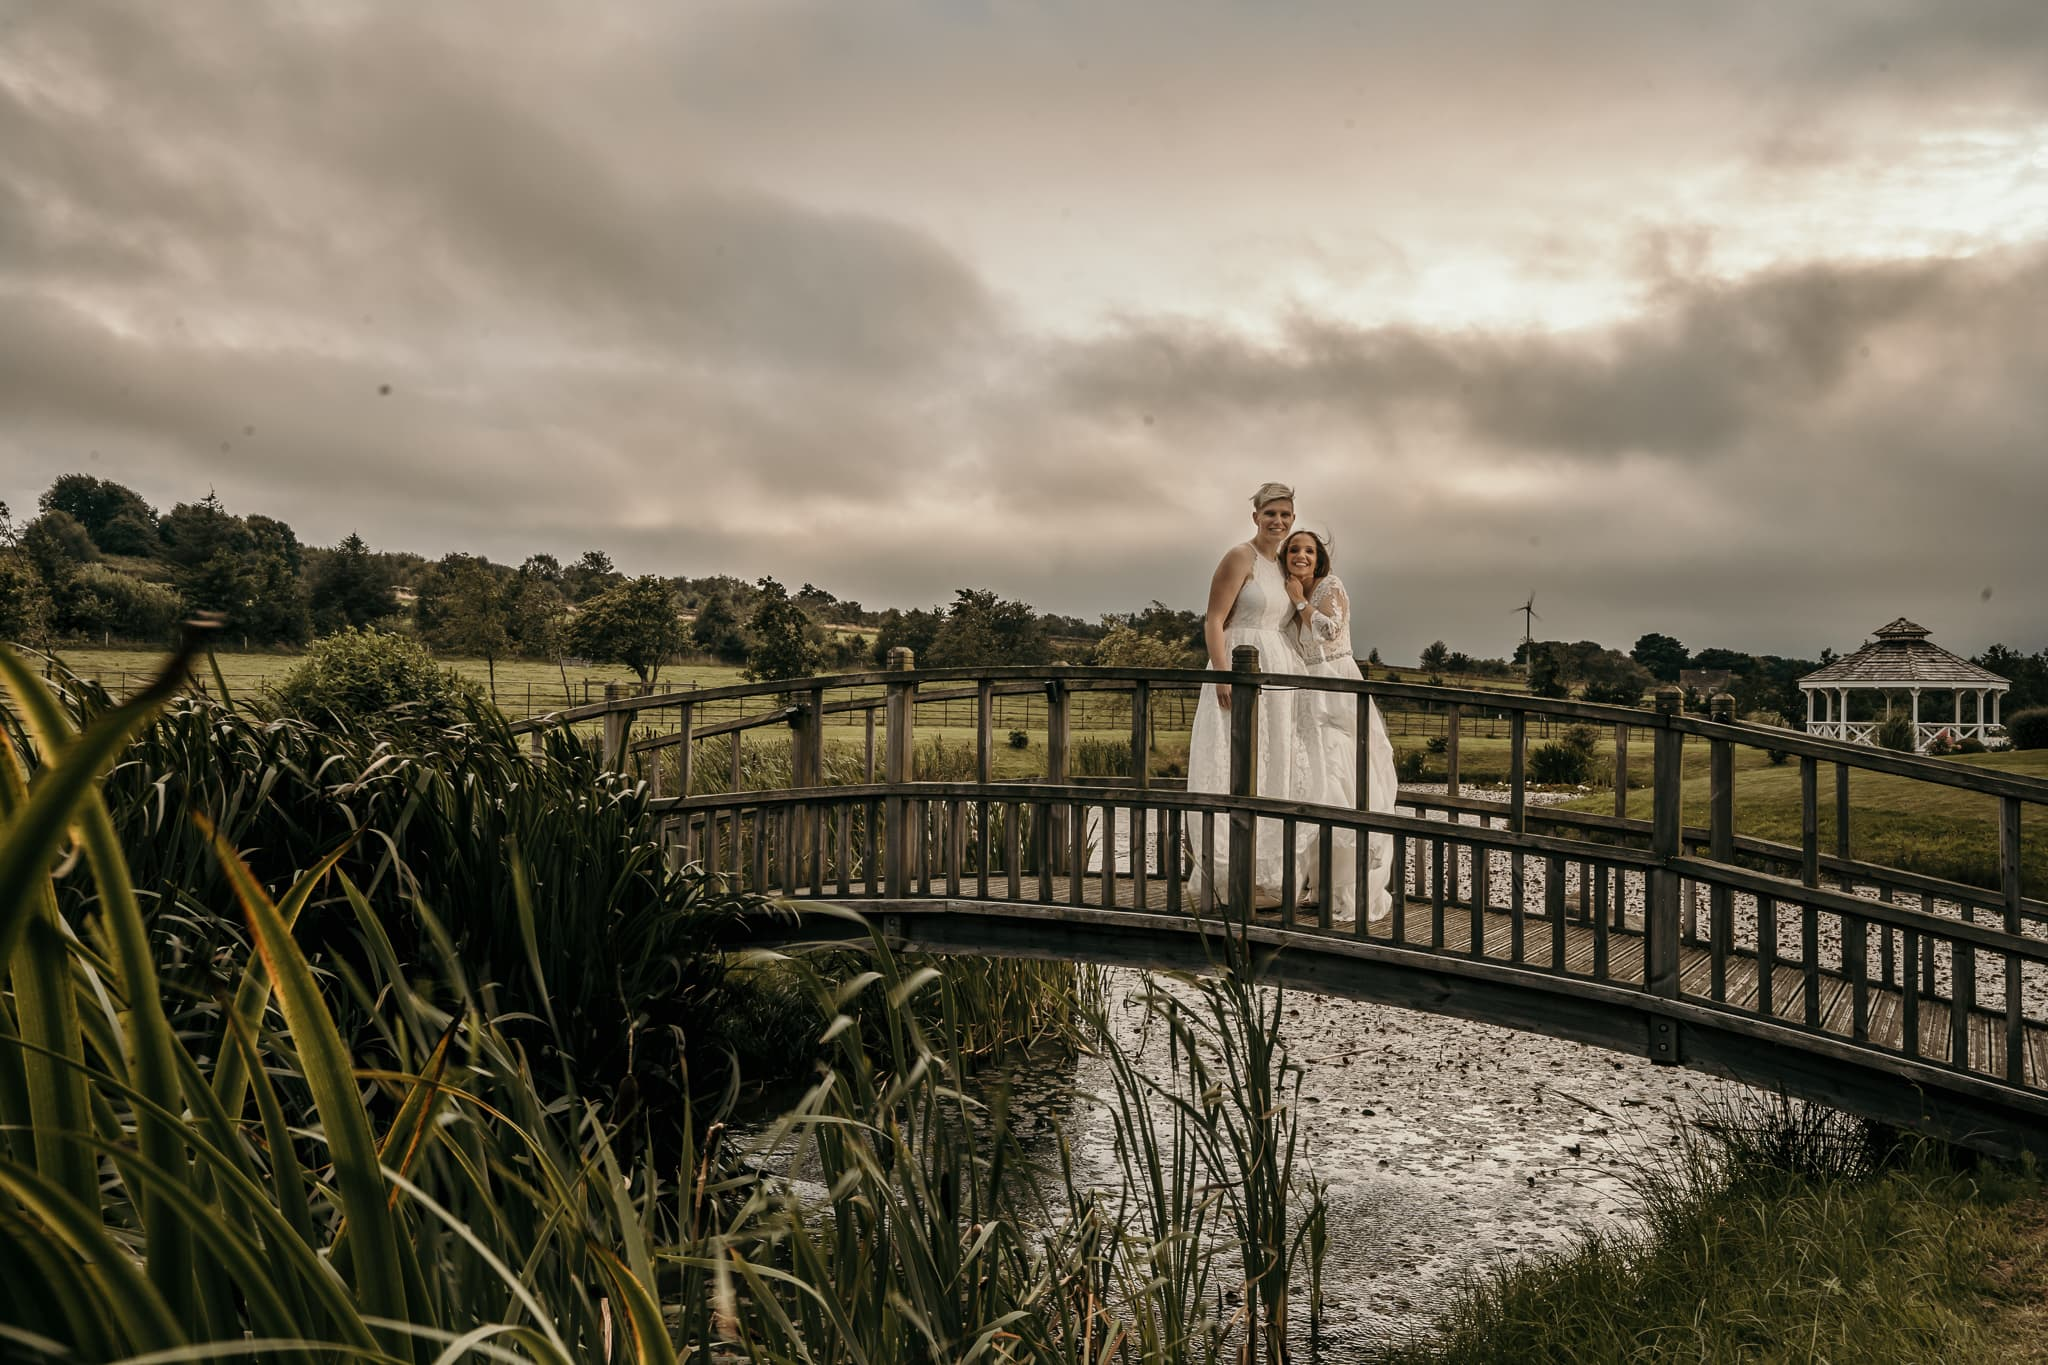 Brides at sunset in Chesterfield